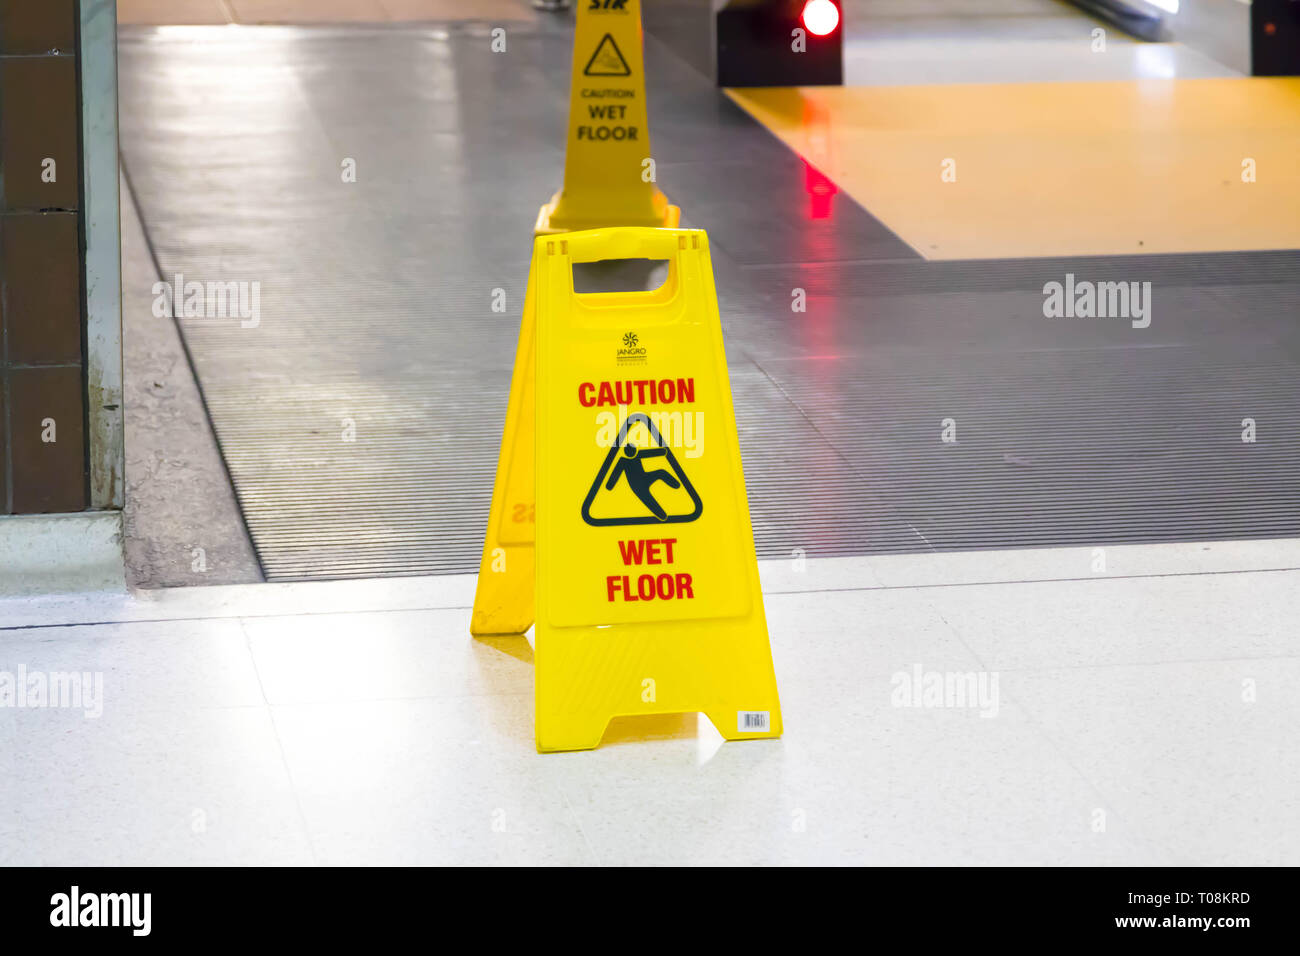 Wet floor yellow sign at Birmingham train station International - Stock Image